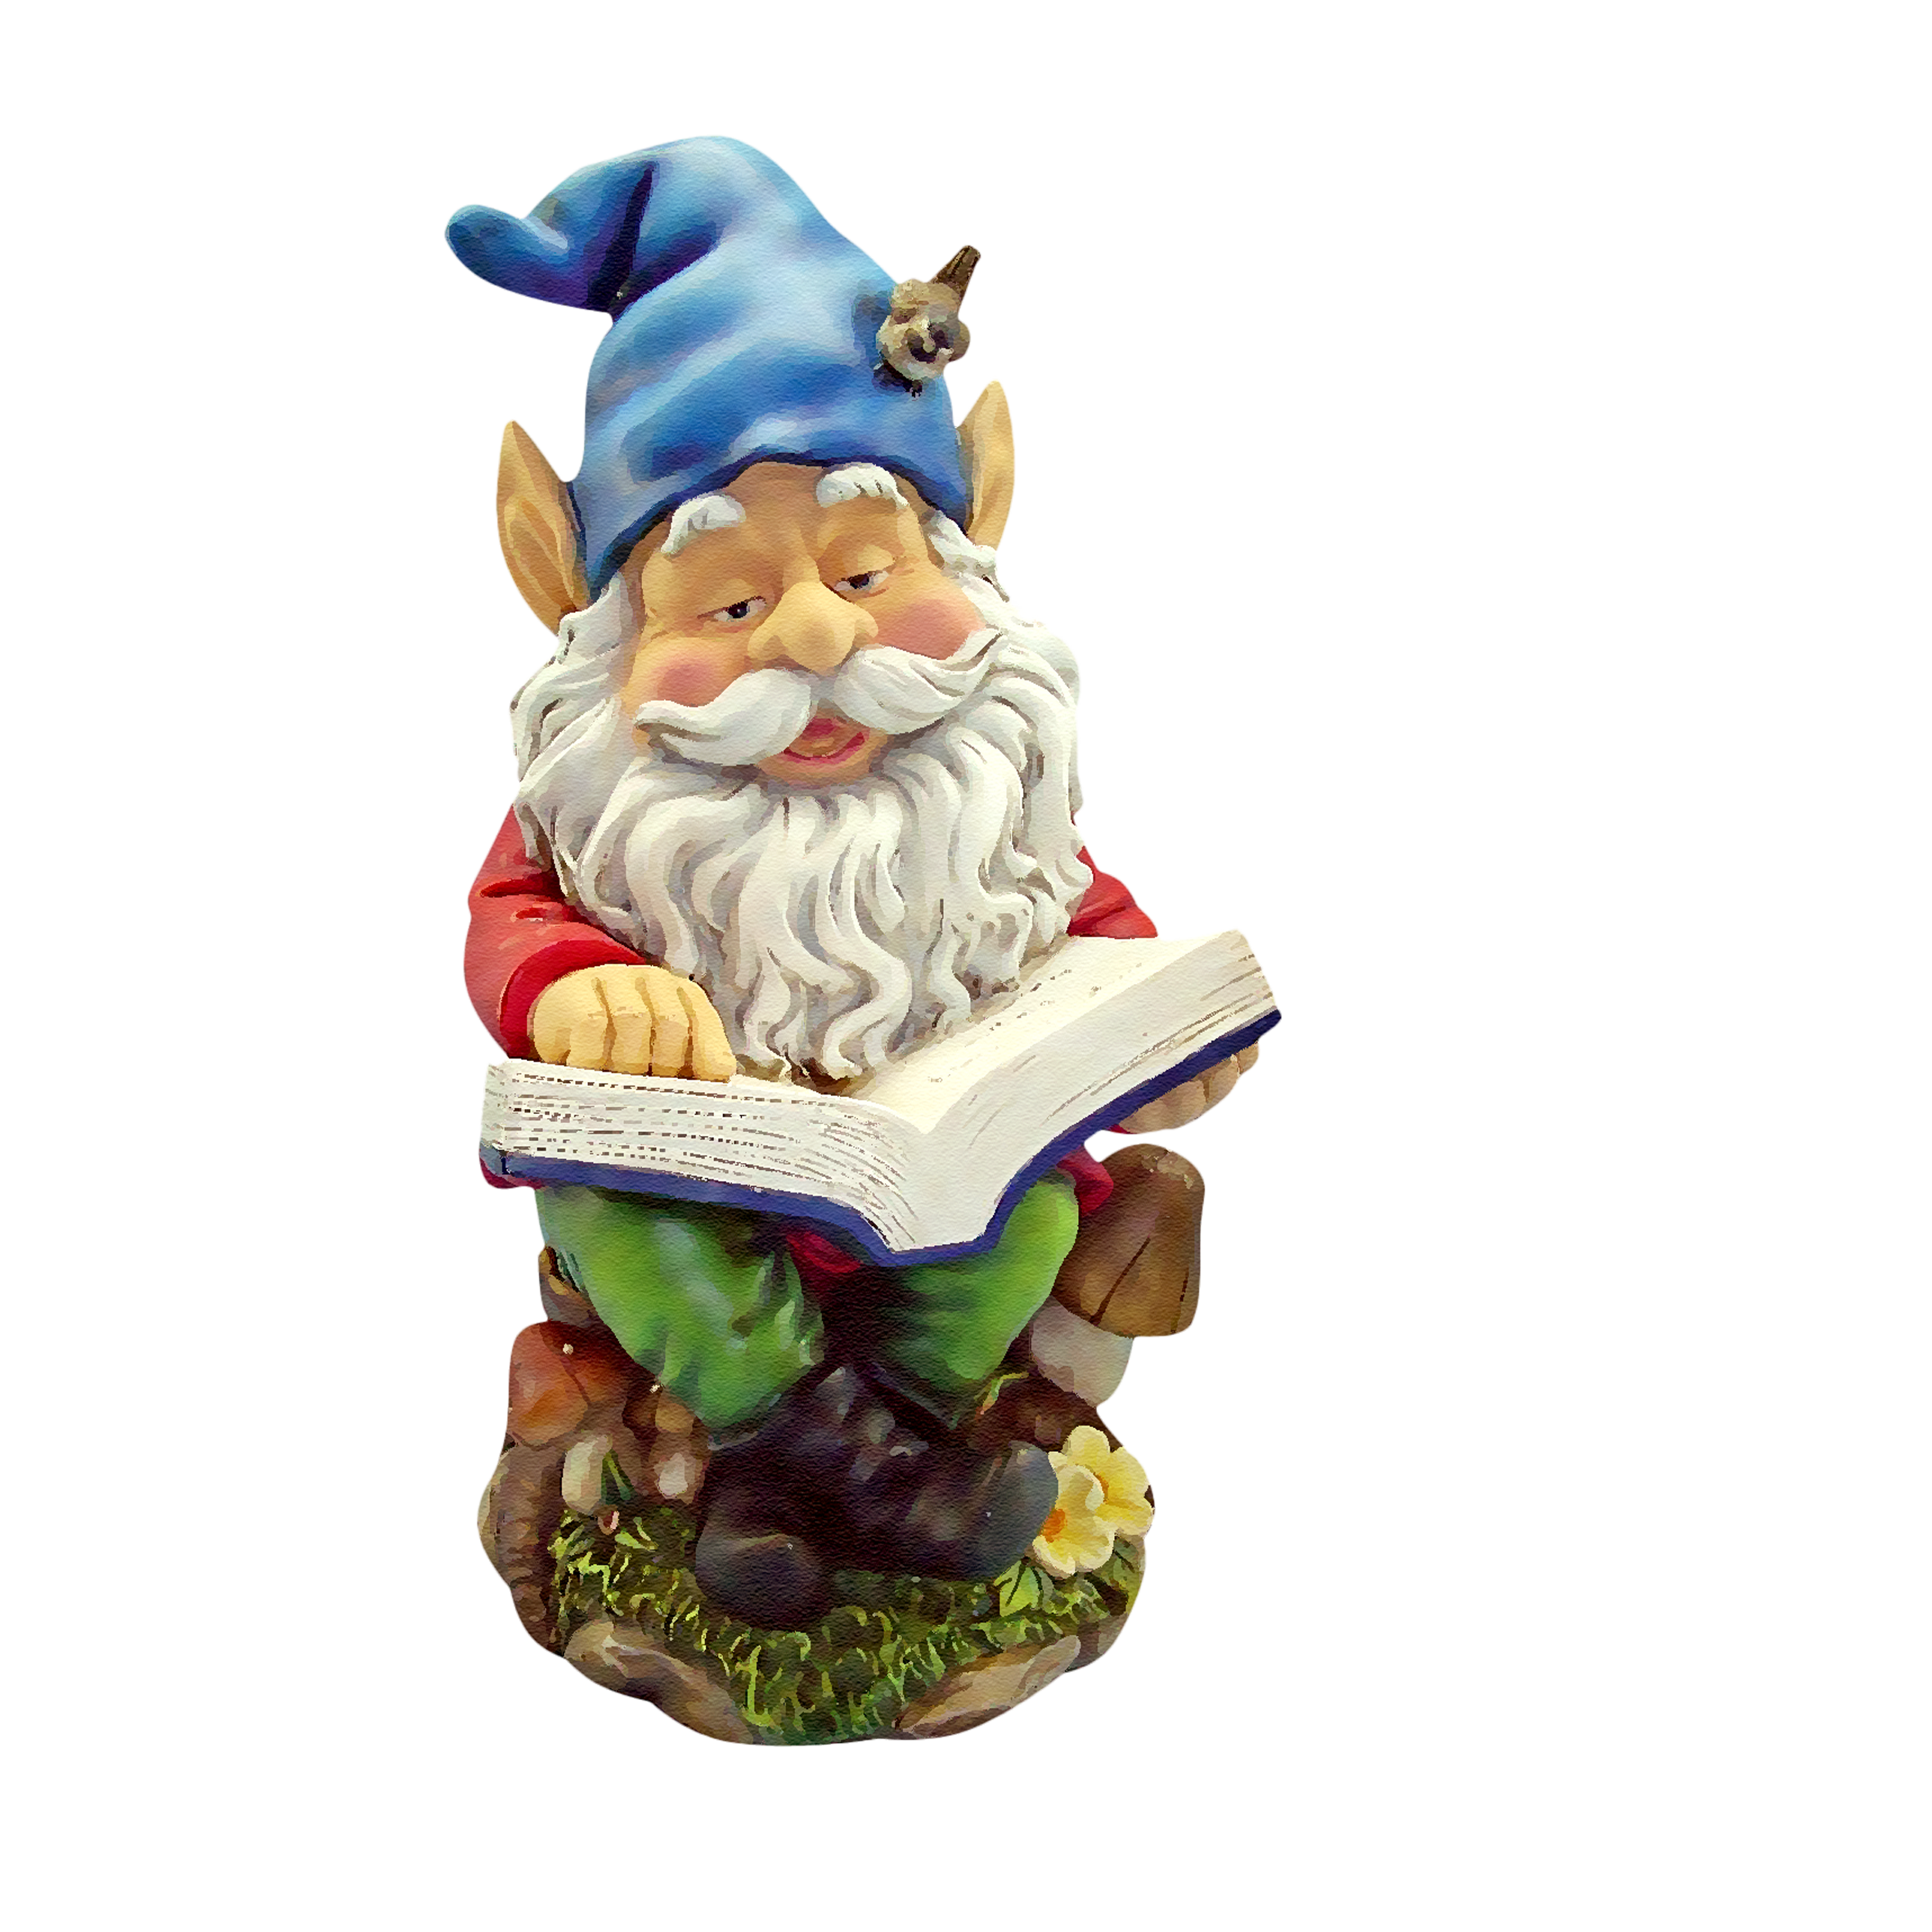 Garden gnome png. Gnomes reading dwarf transprent